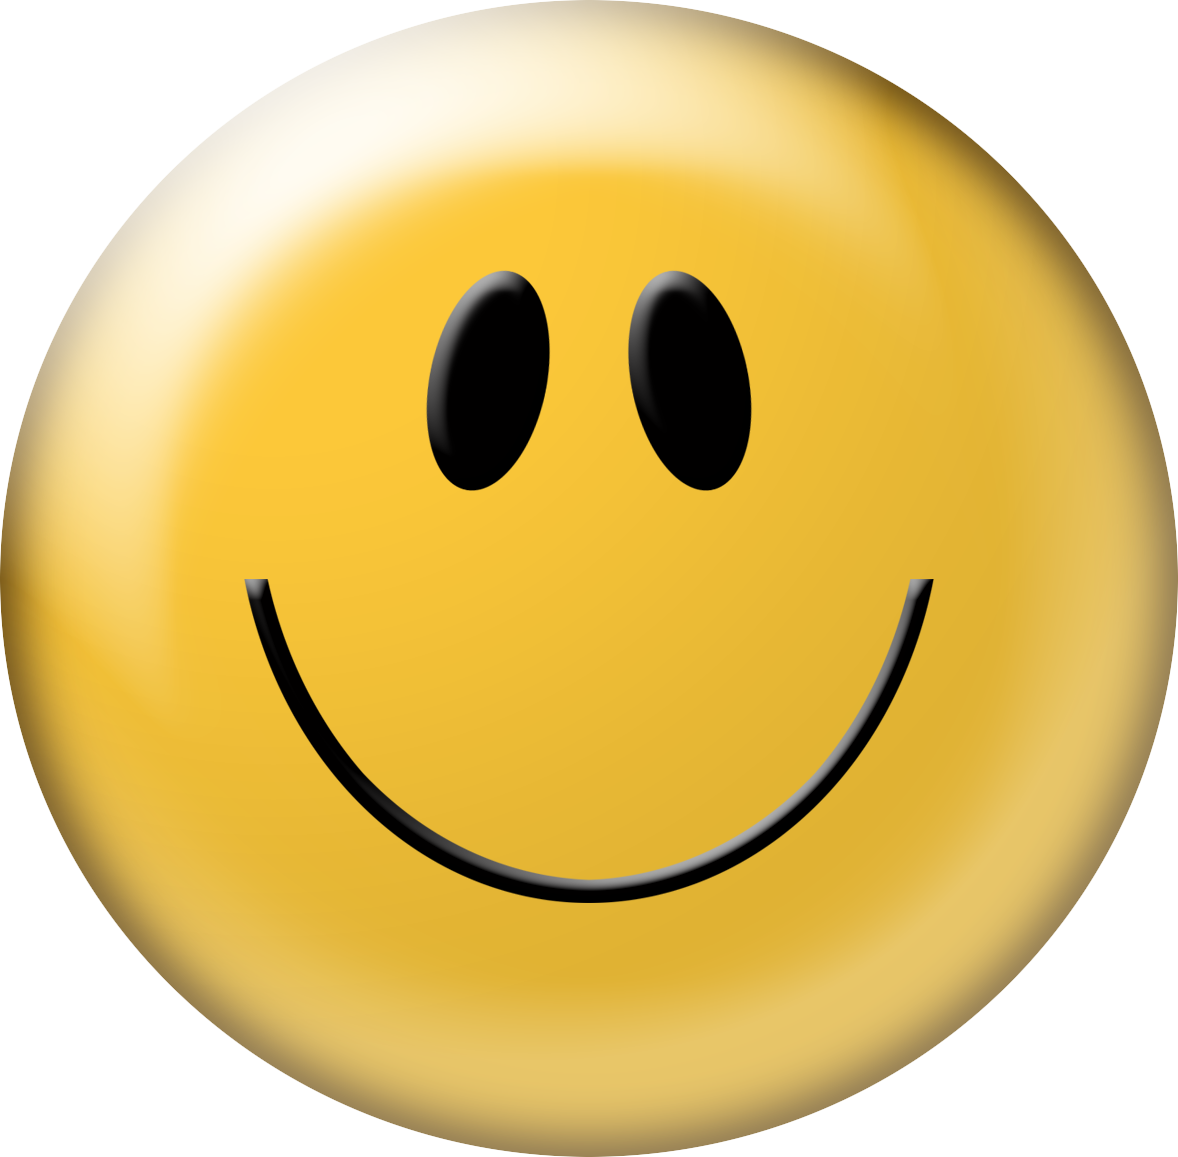 Smiley Face Transparent Background | Clipart Panda - Free ...